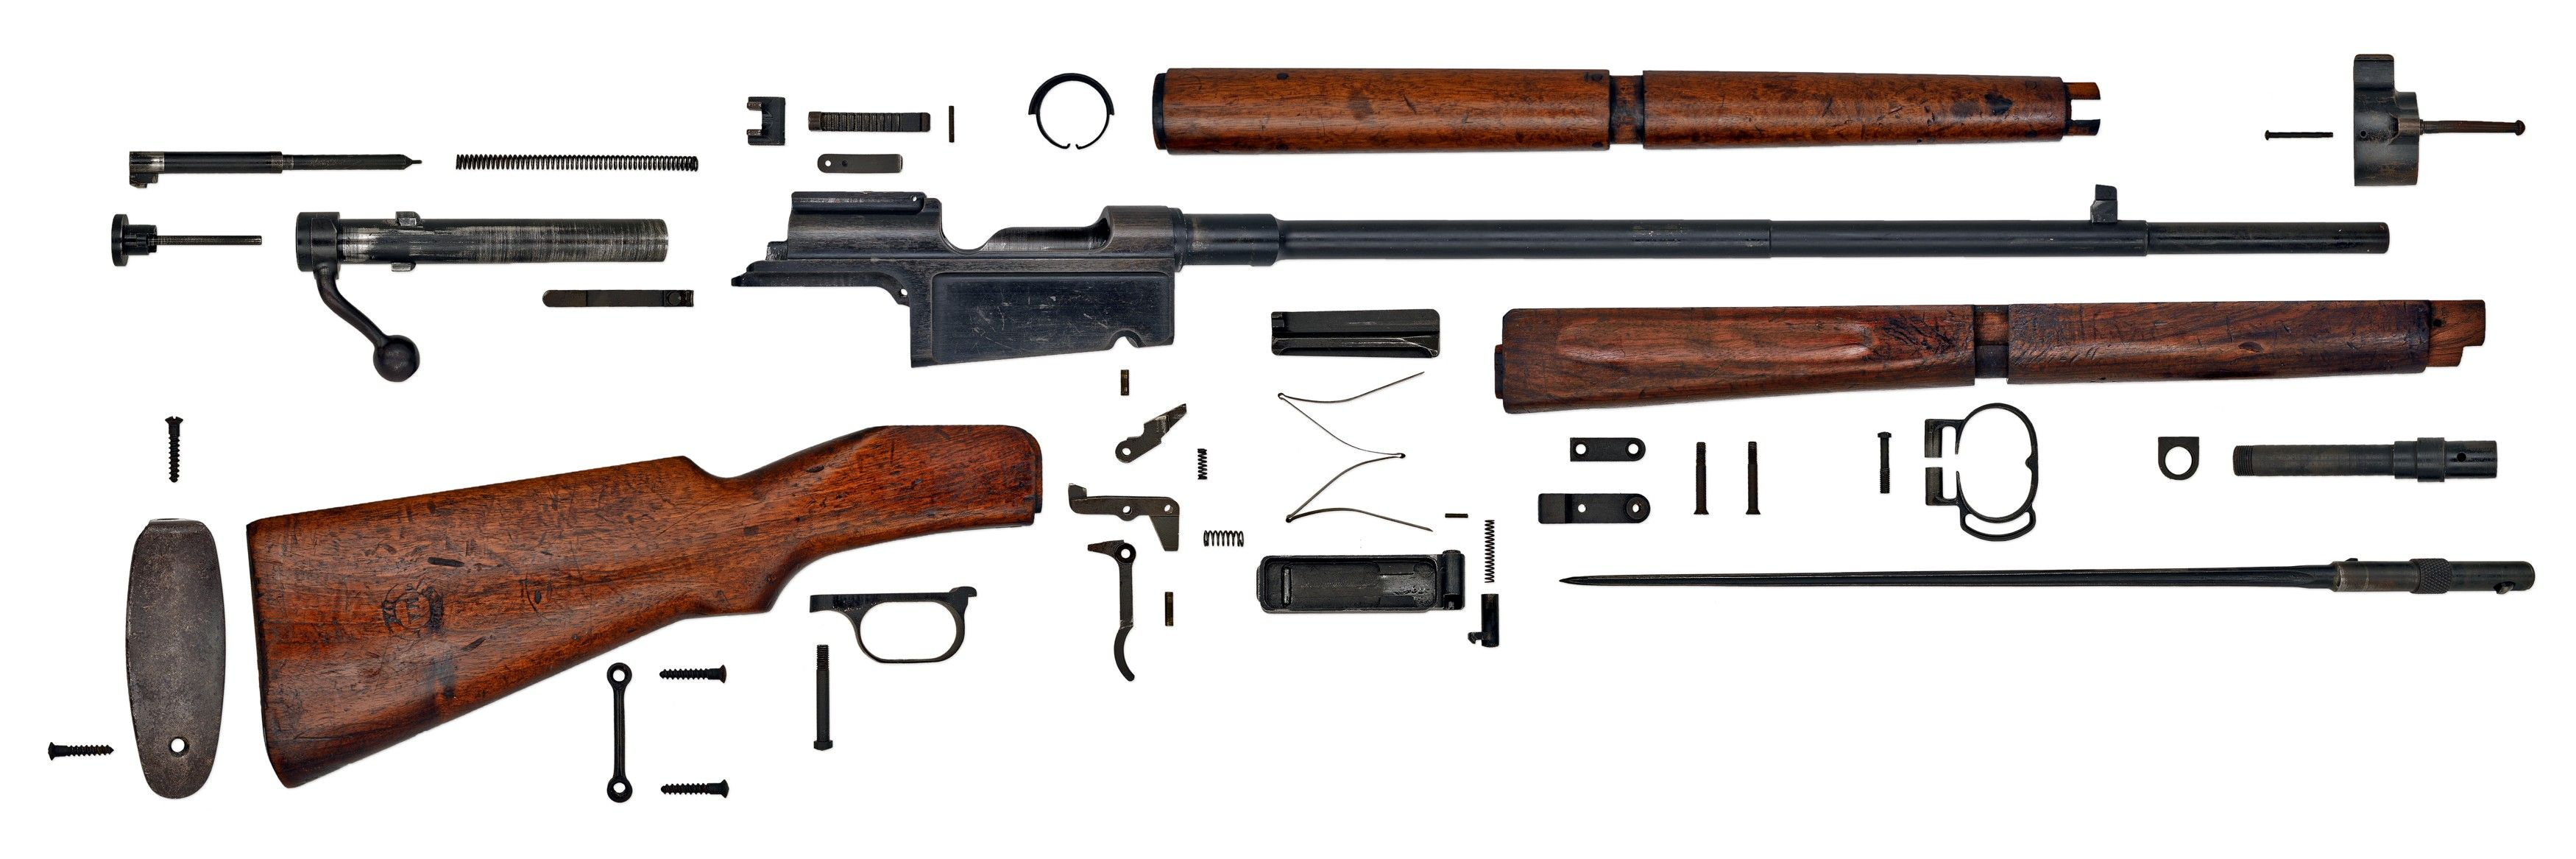 Small Arms Anatomy: Eight WWII Rifles - The Firearm Blog | Weapons ...